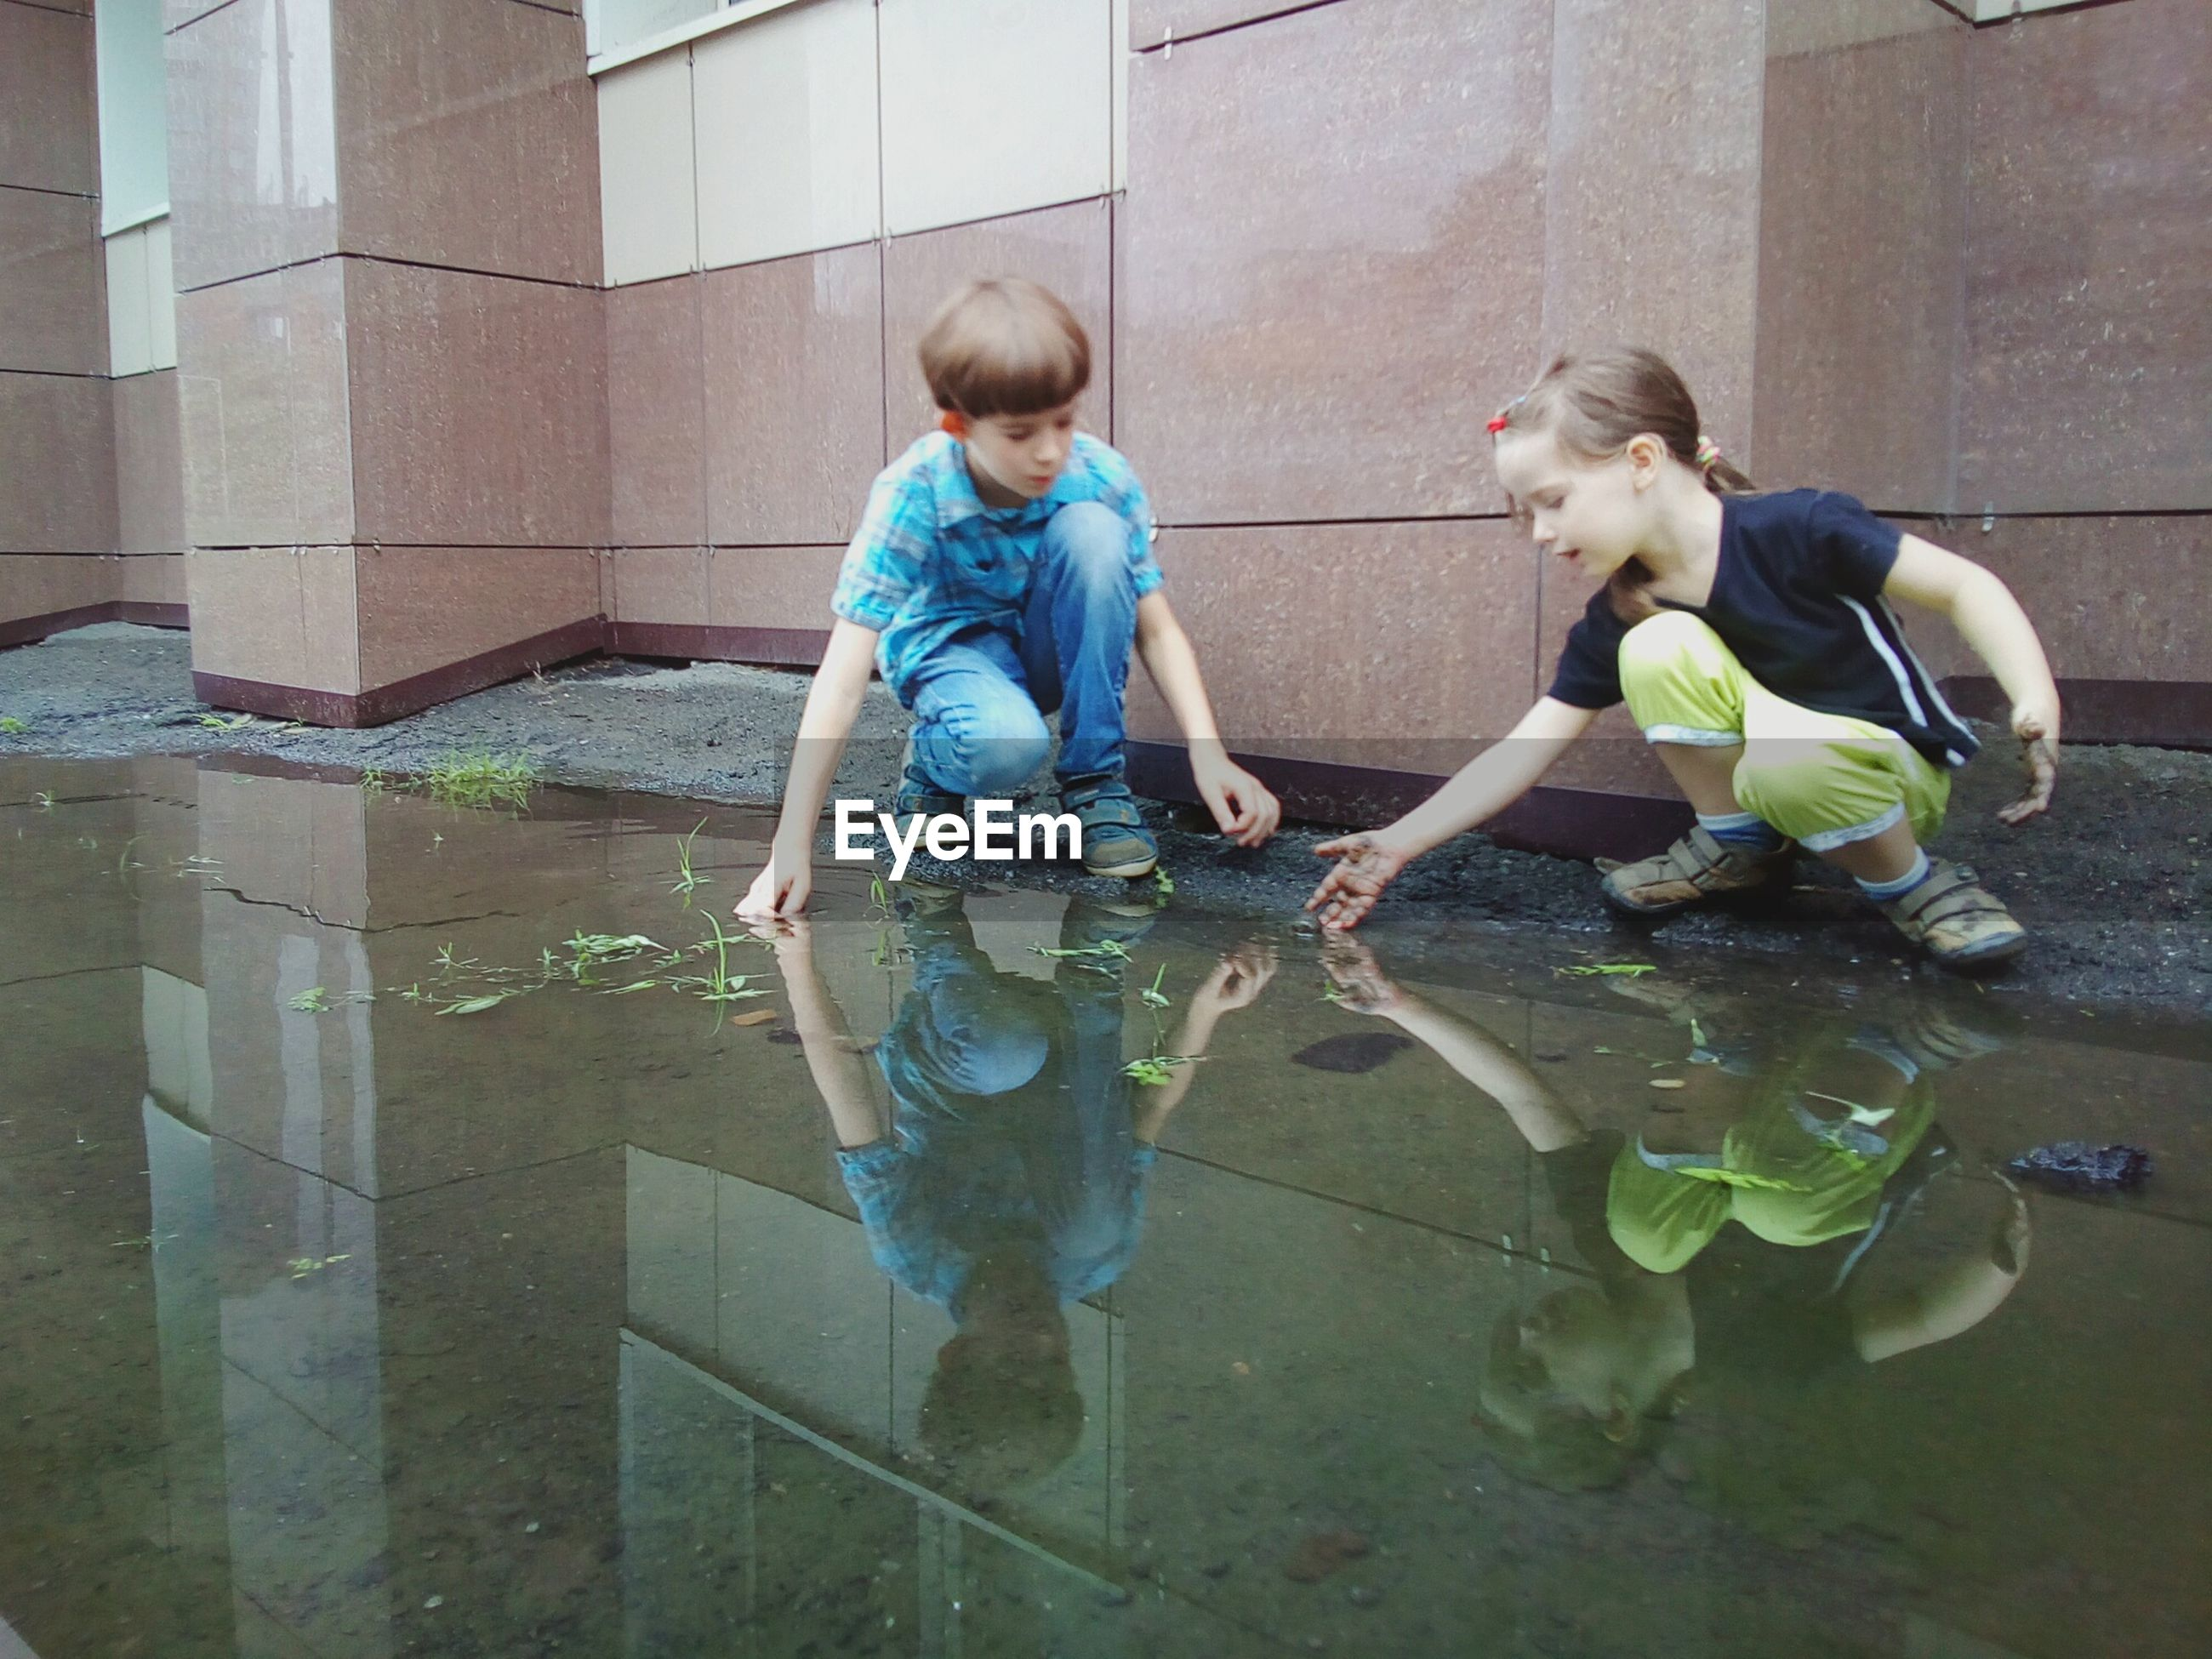 Siblings playing in puddle by building